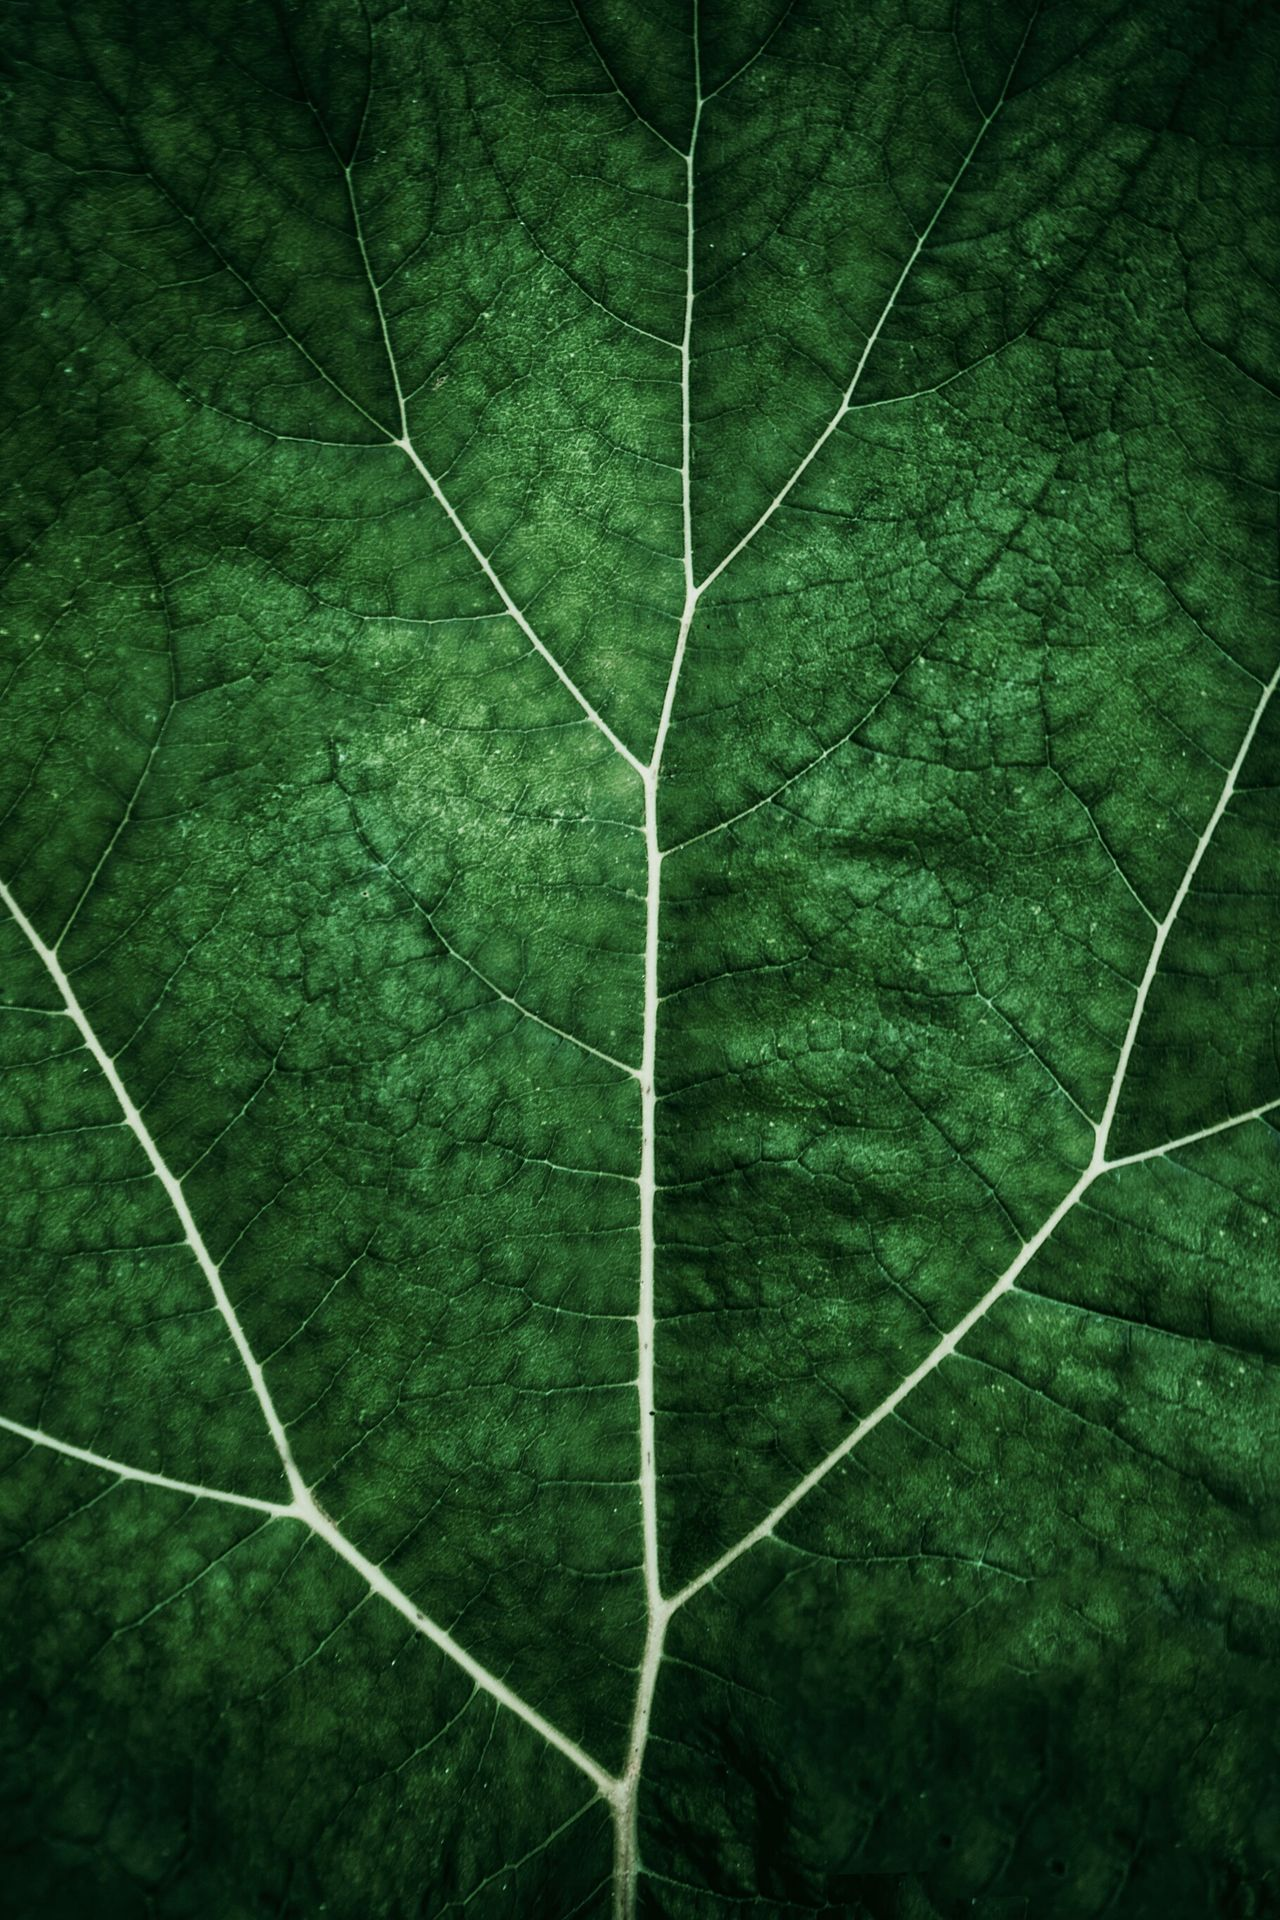 Green Color High Angle View Outdoors Nature No People Aerial View Close-up Full Frame The Week Of Eyeem Freshness Growth Leaf Beauty In Nature